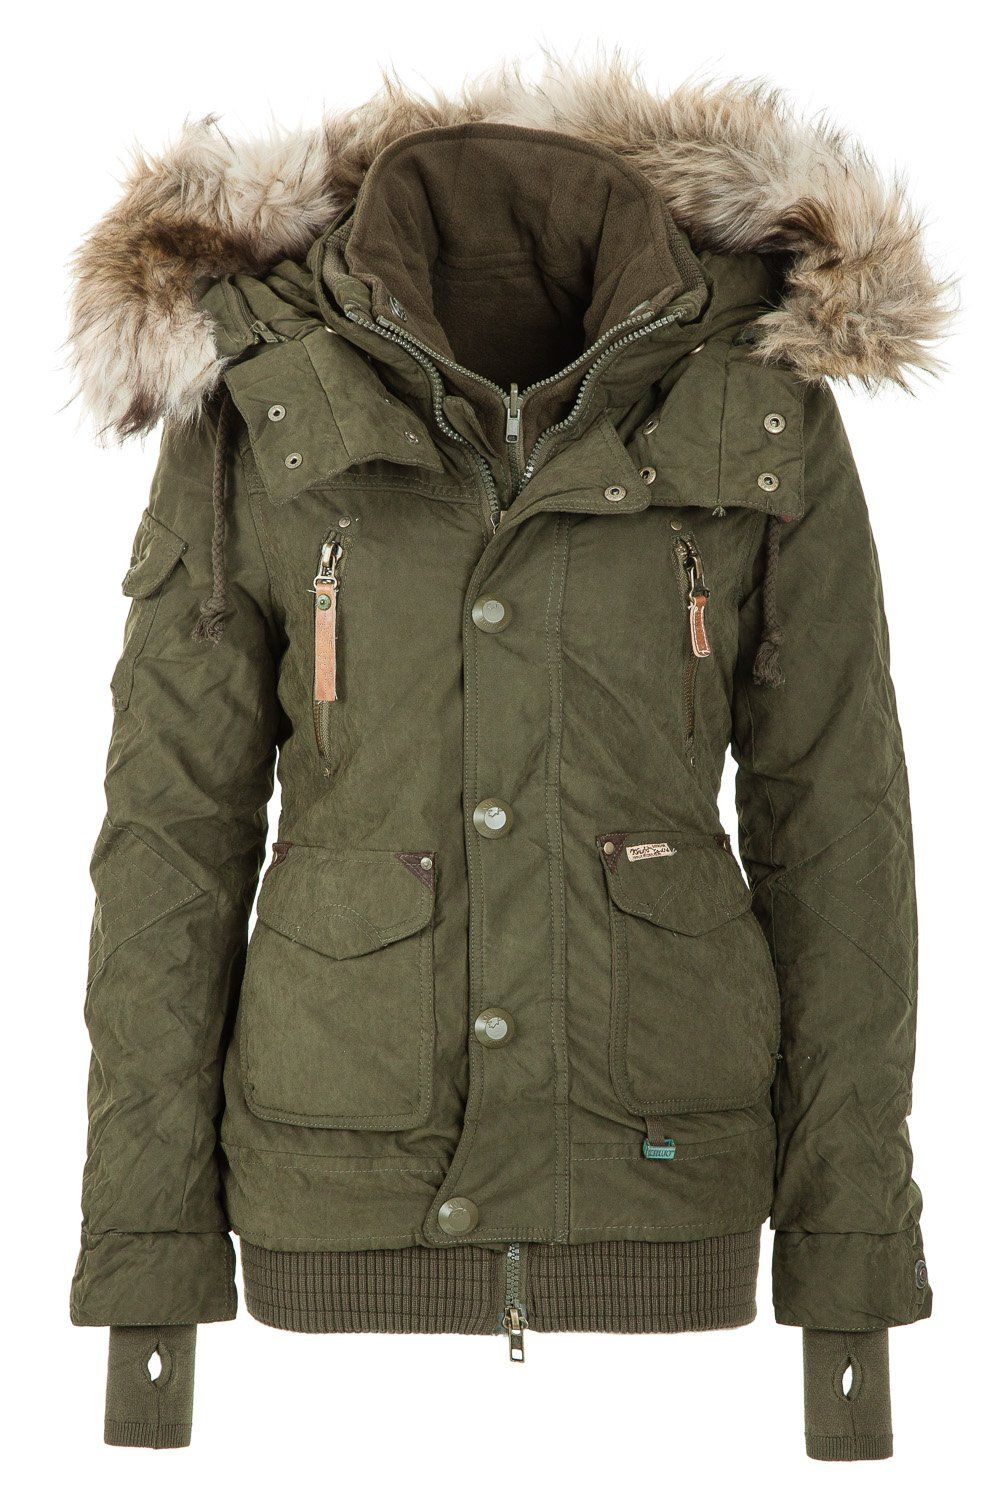 Khujo Women\u0027s Winter Jacket Margret Olive 320 http://www.